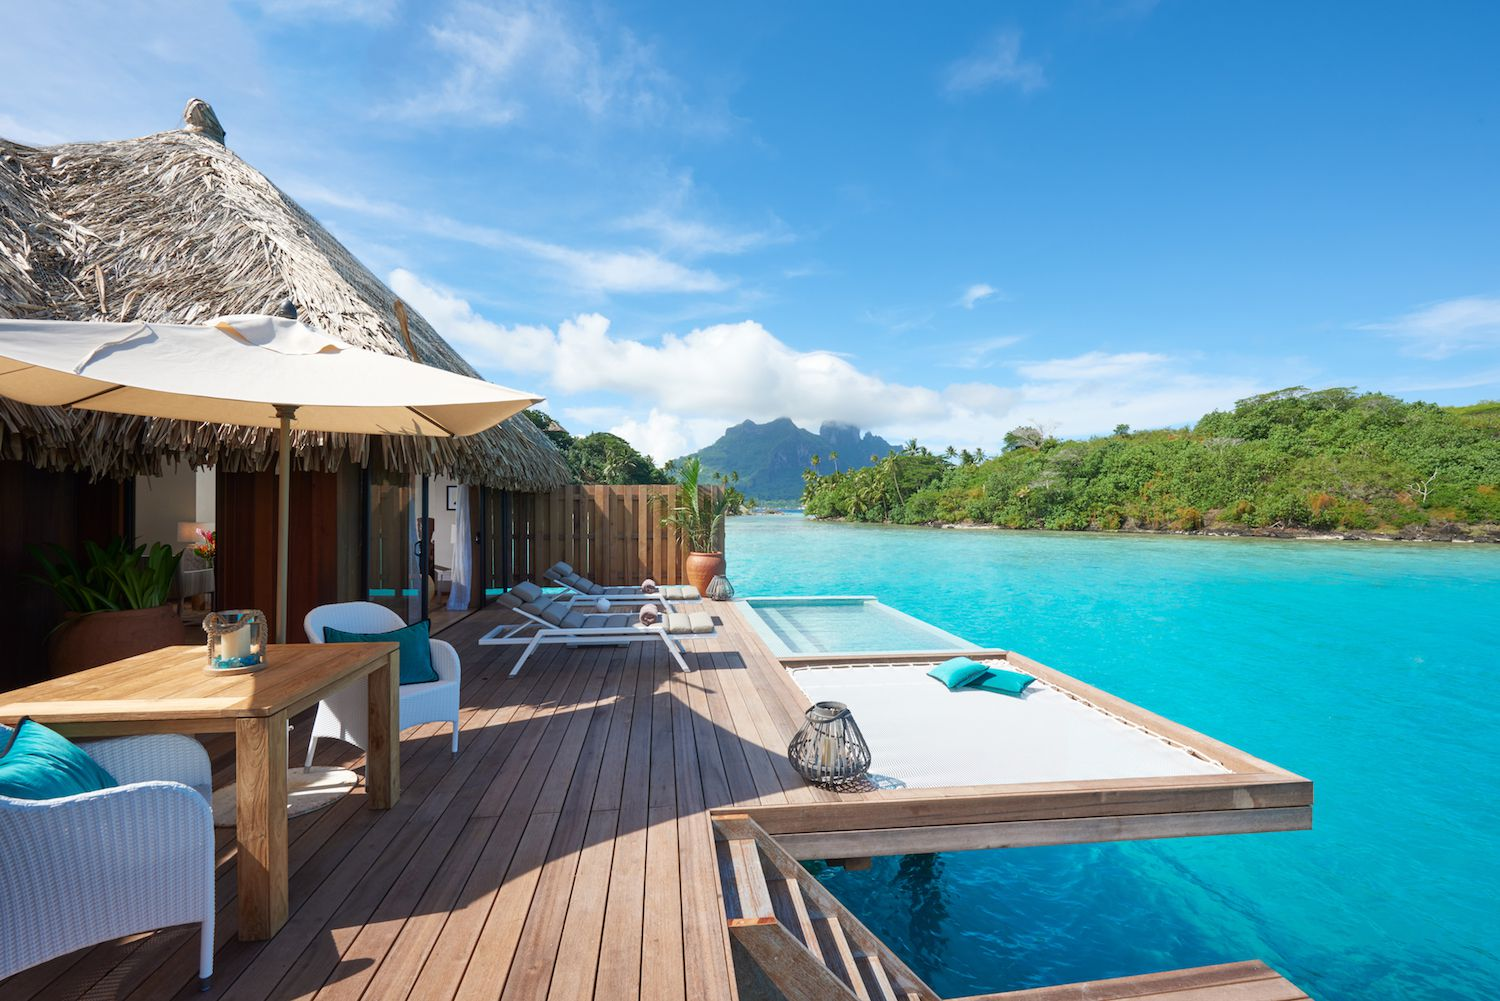 Best Overwater Bungalows You Can Book With Points